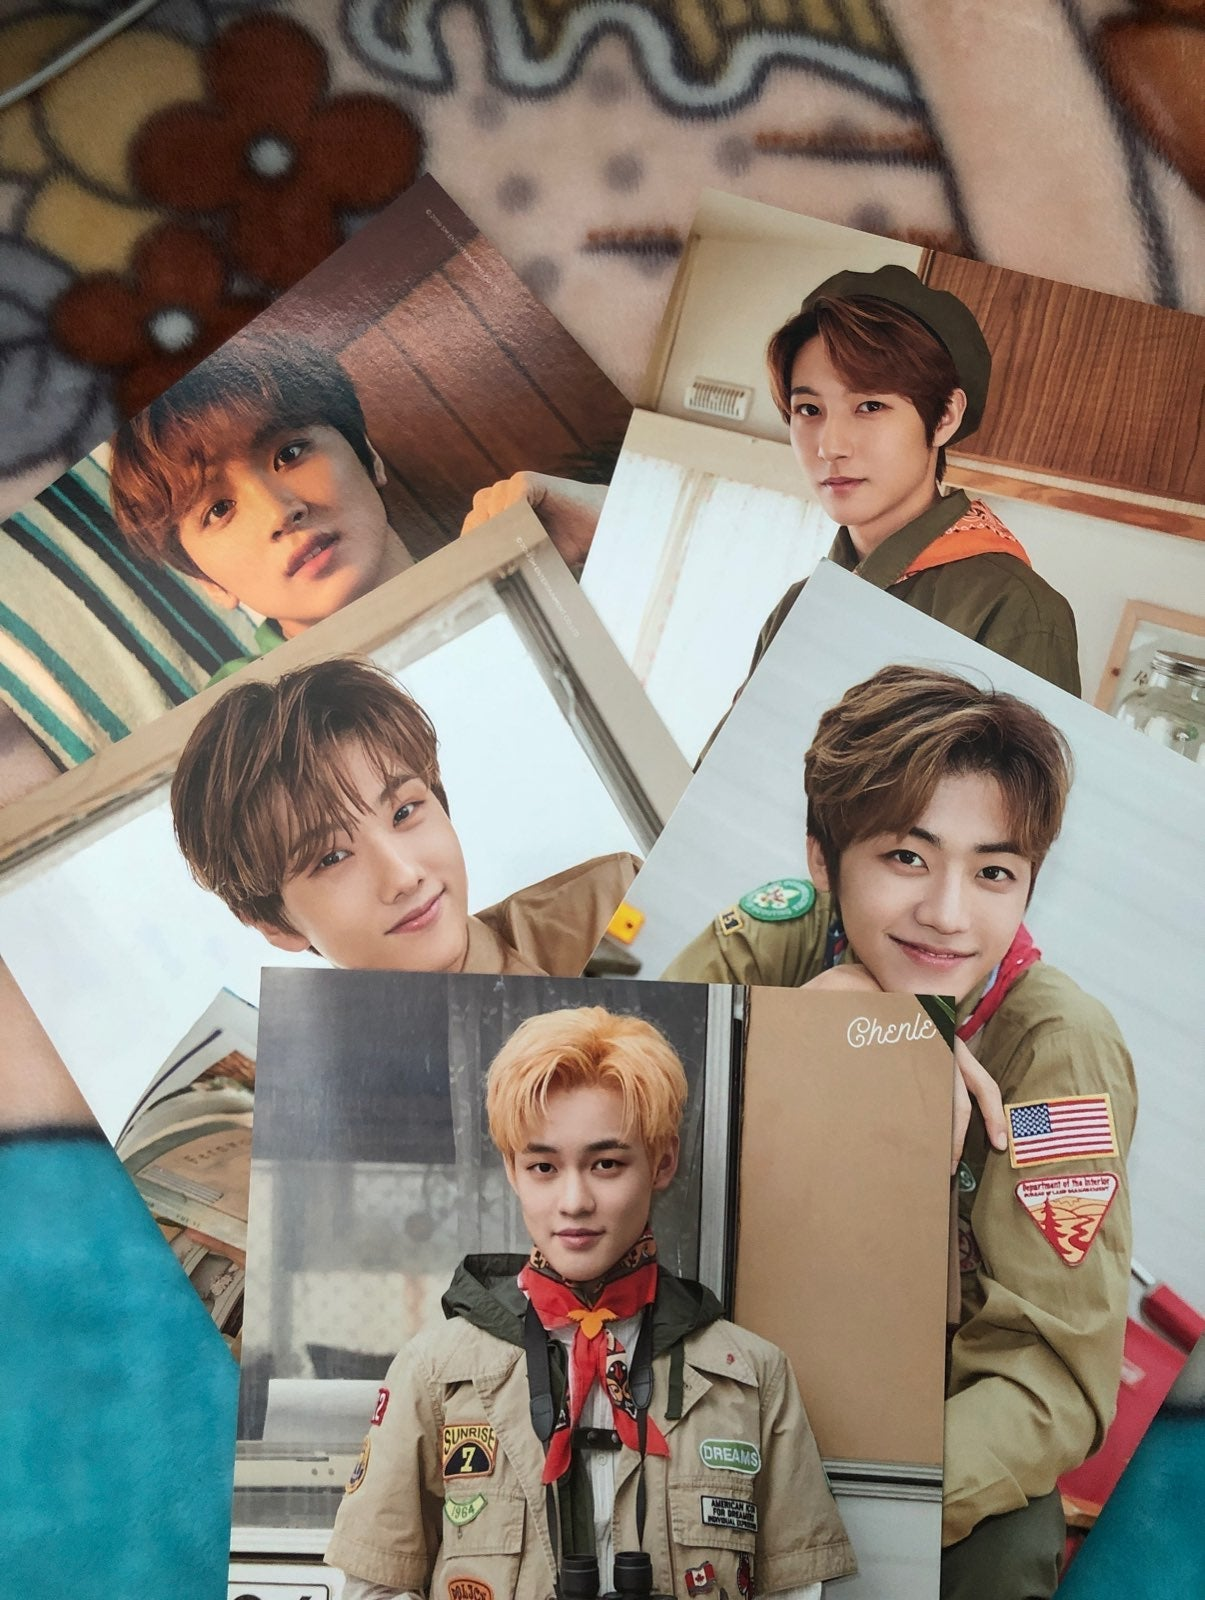 NCT Dream summer package posters